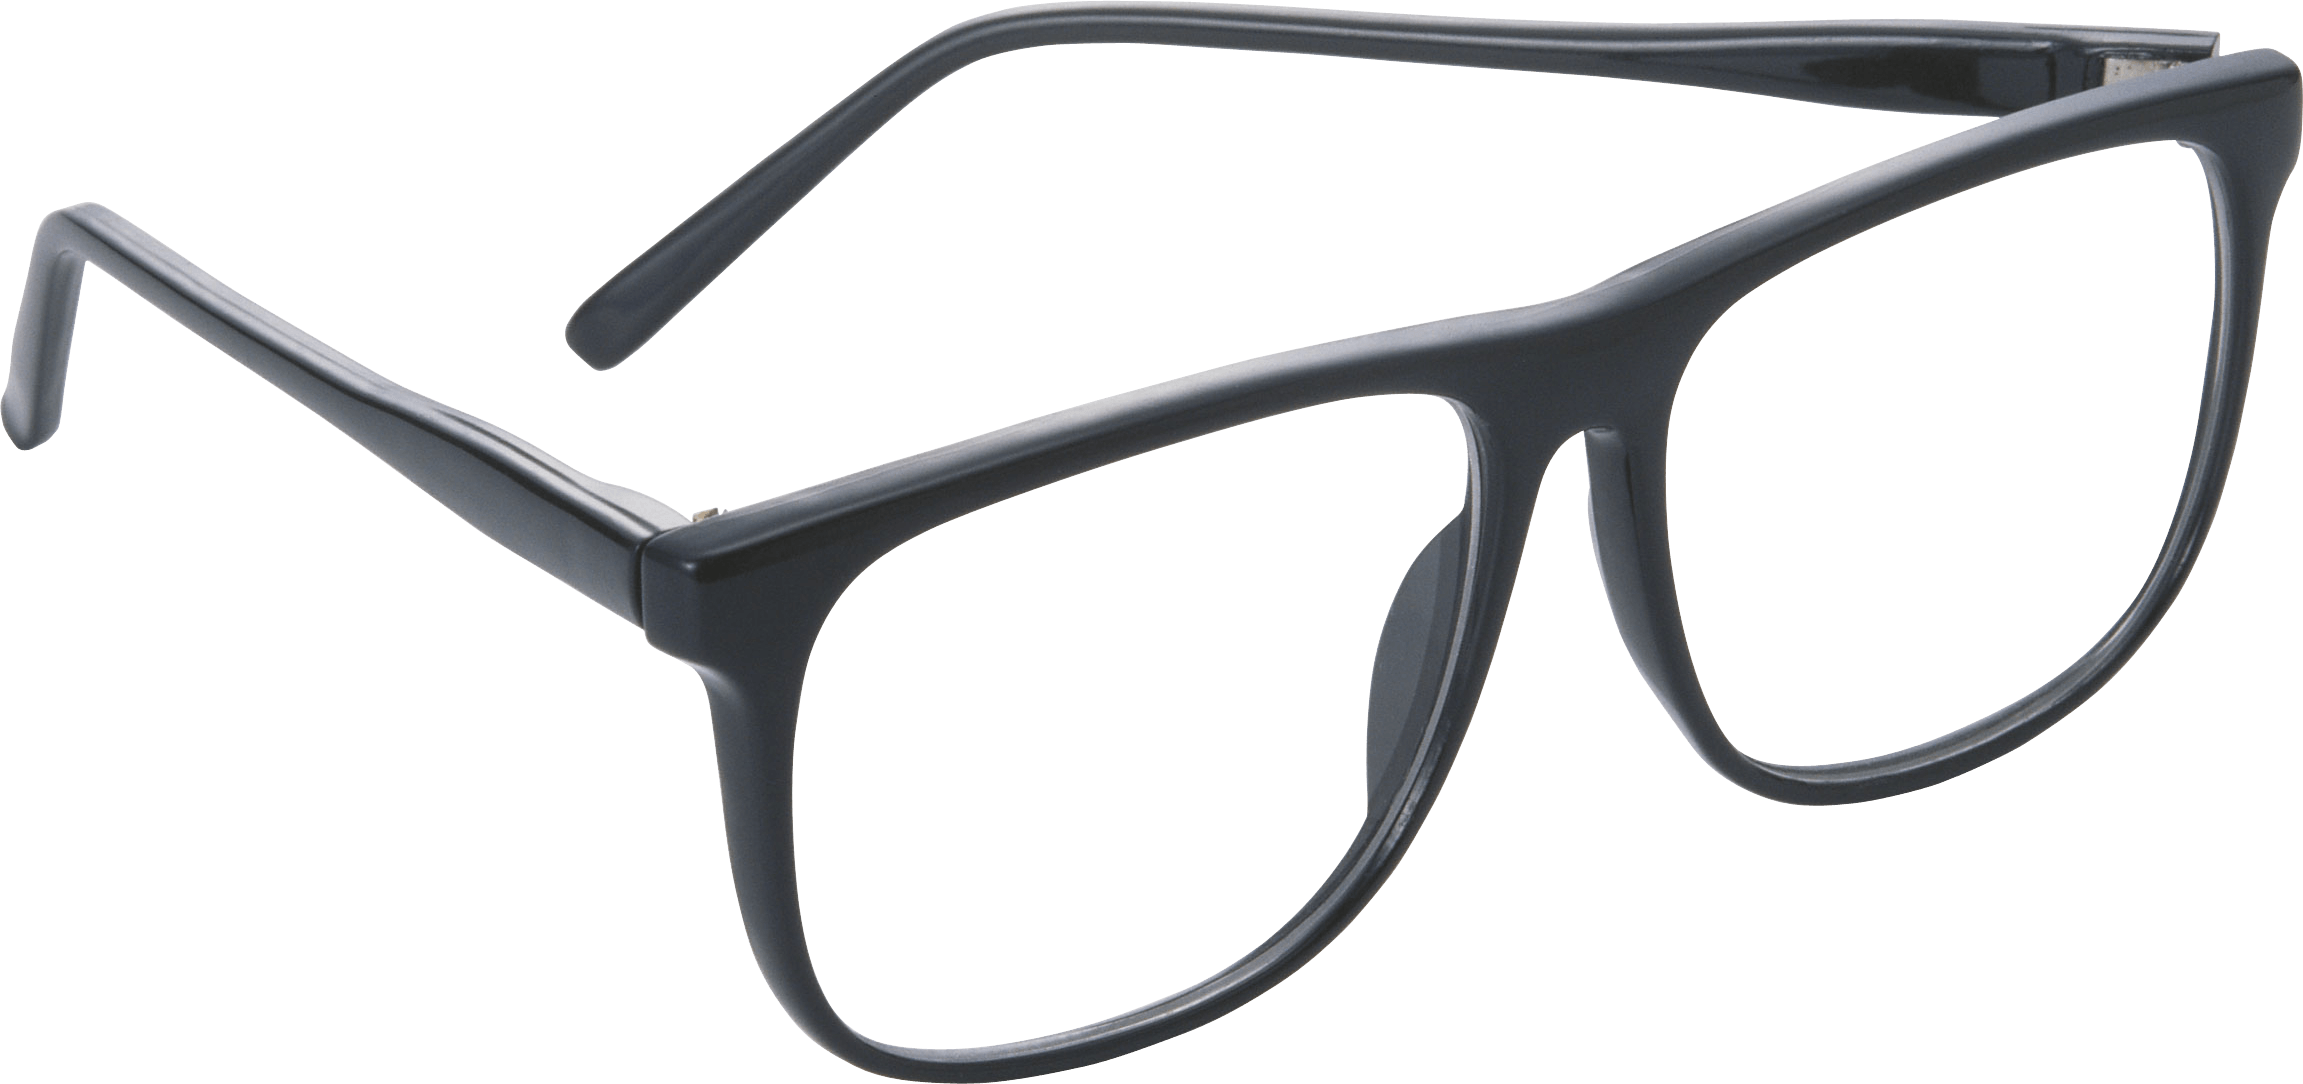 Sideview stickpng. Glasses png transparent image library download